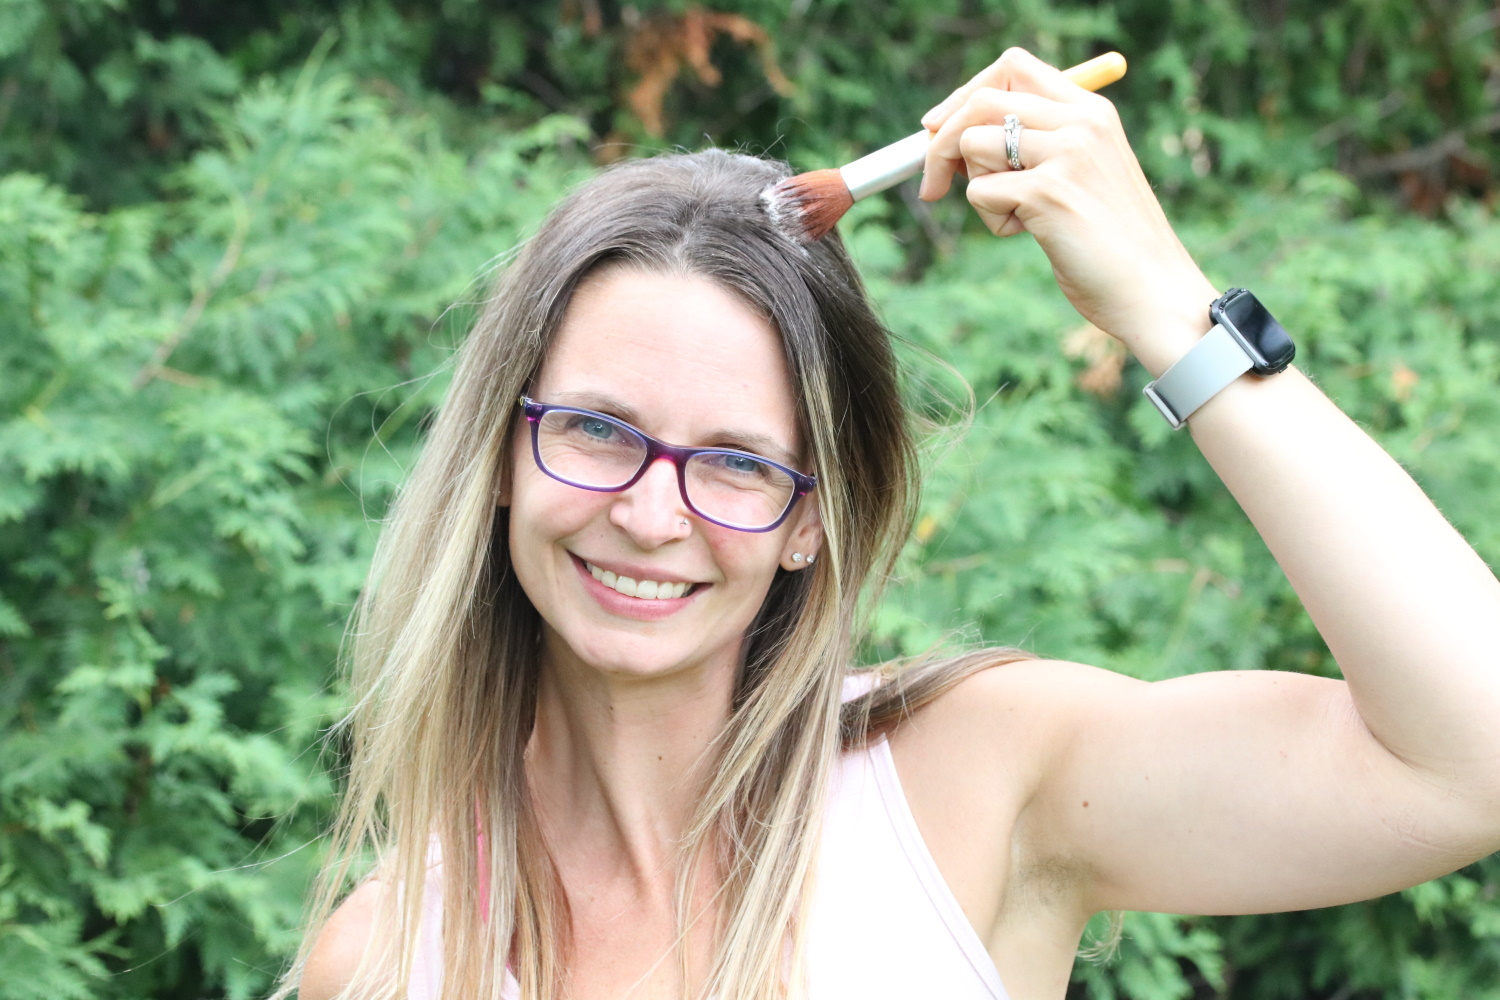 Woman outside in peach shirt using a makeup brush to distribute dry shampoo into her hair